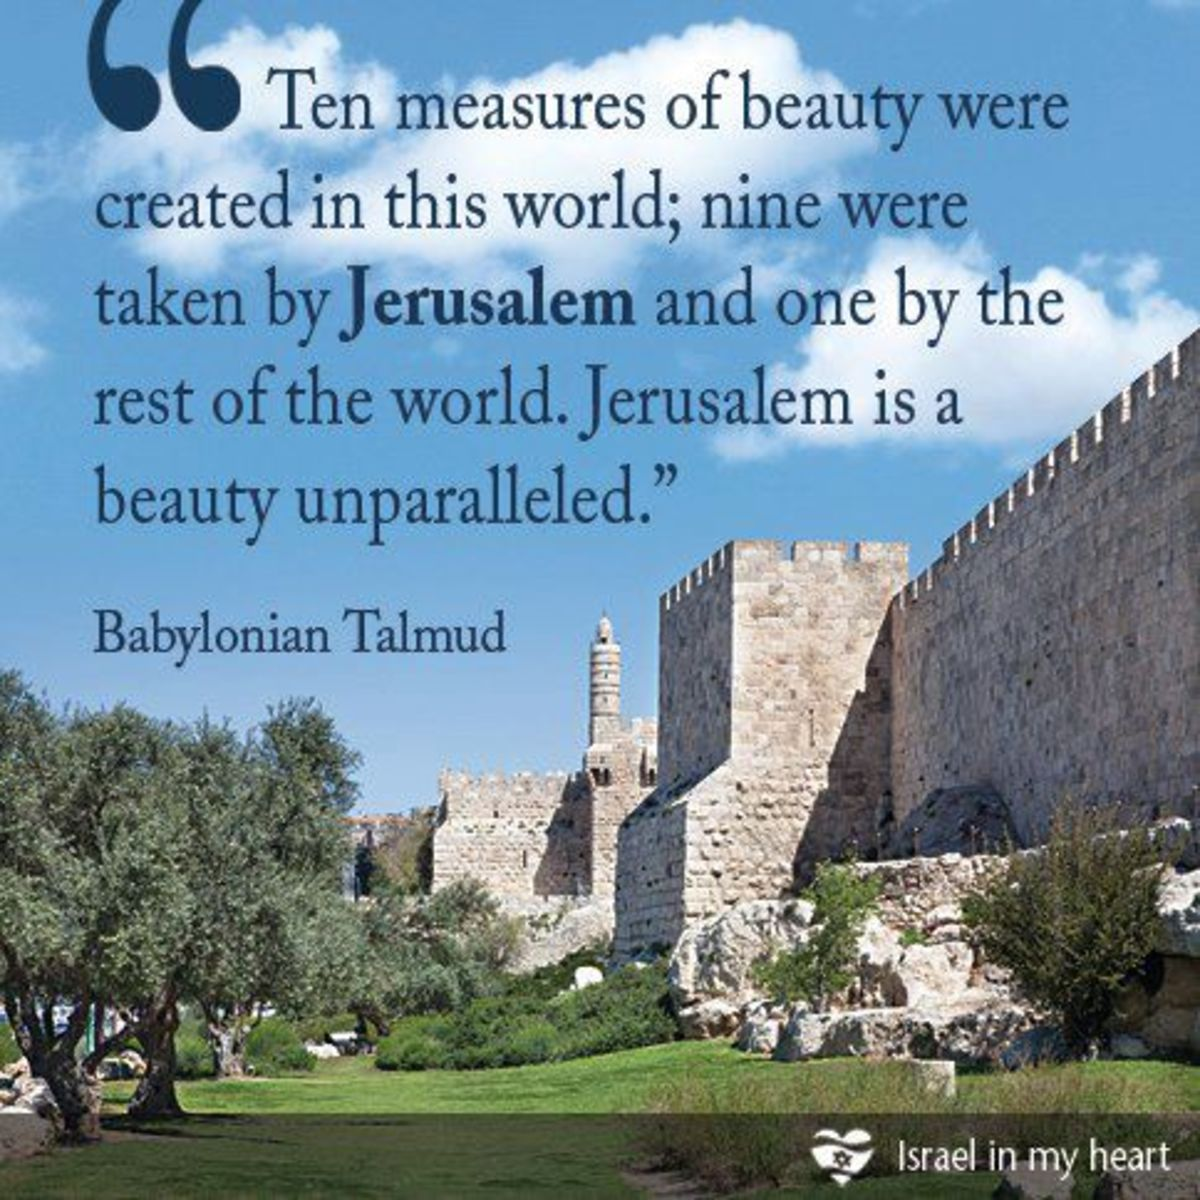 Ten Measures of Beauty were created in this world. 9 were taken by Jerusalem and one by the rest of the world. Jerusalem is a beauty unparalleled.